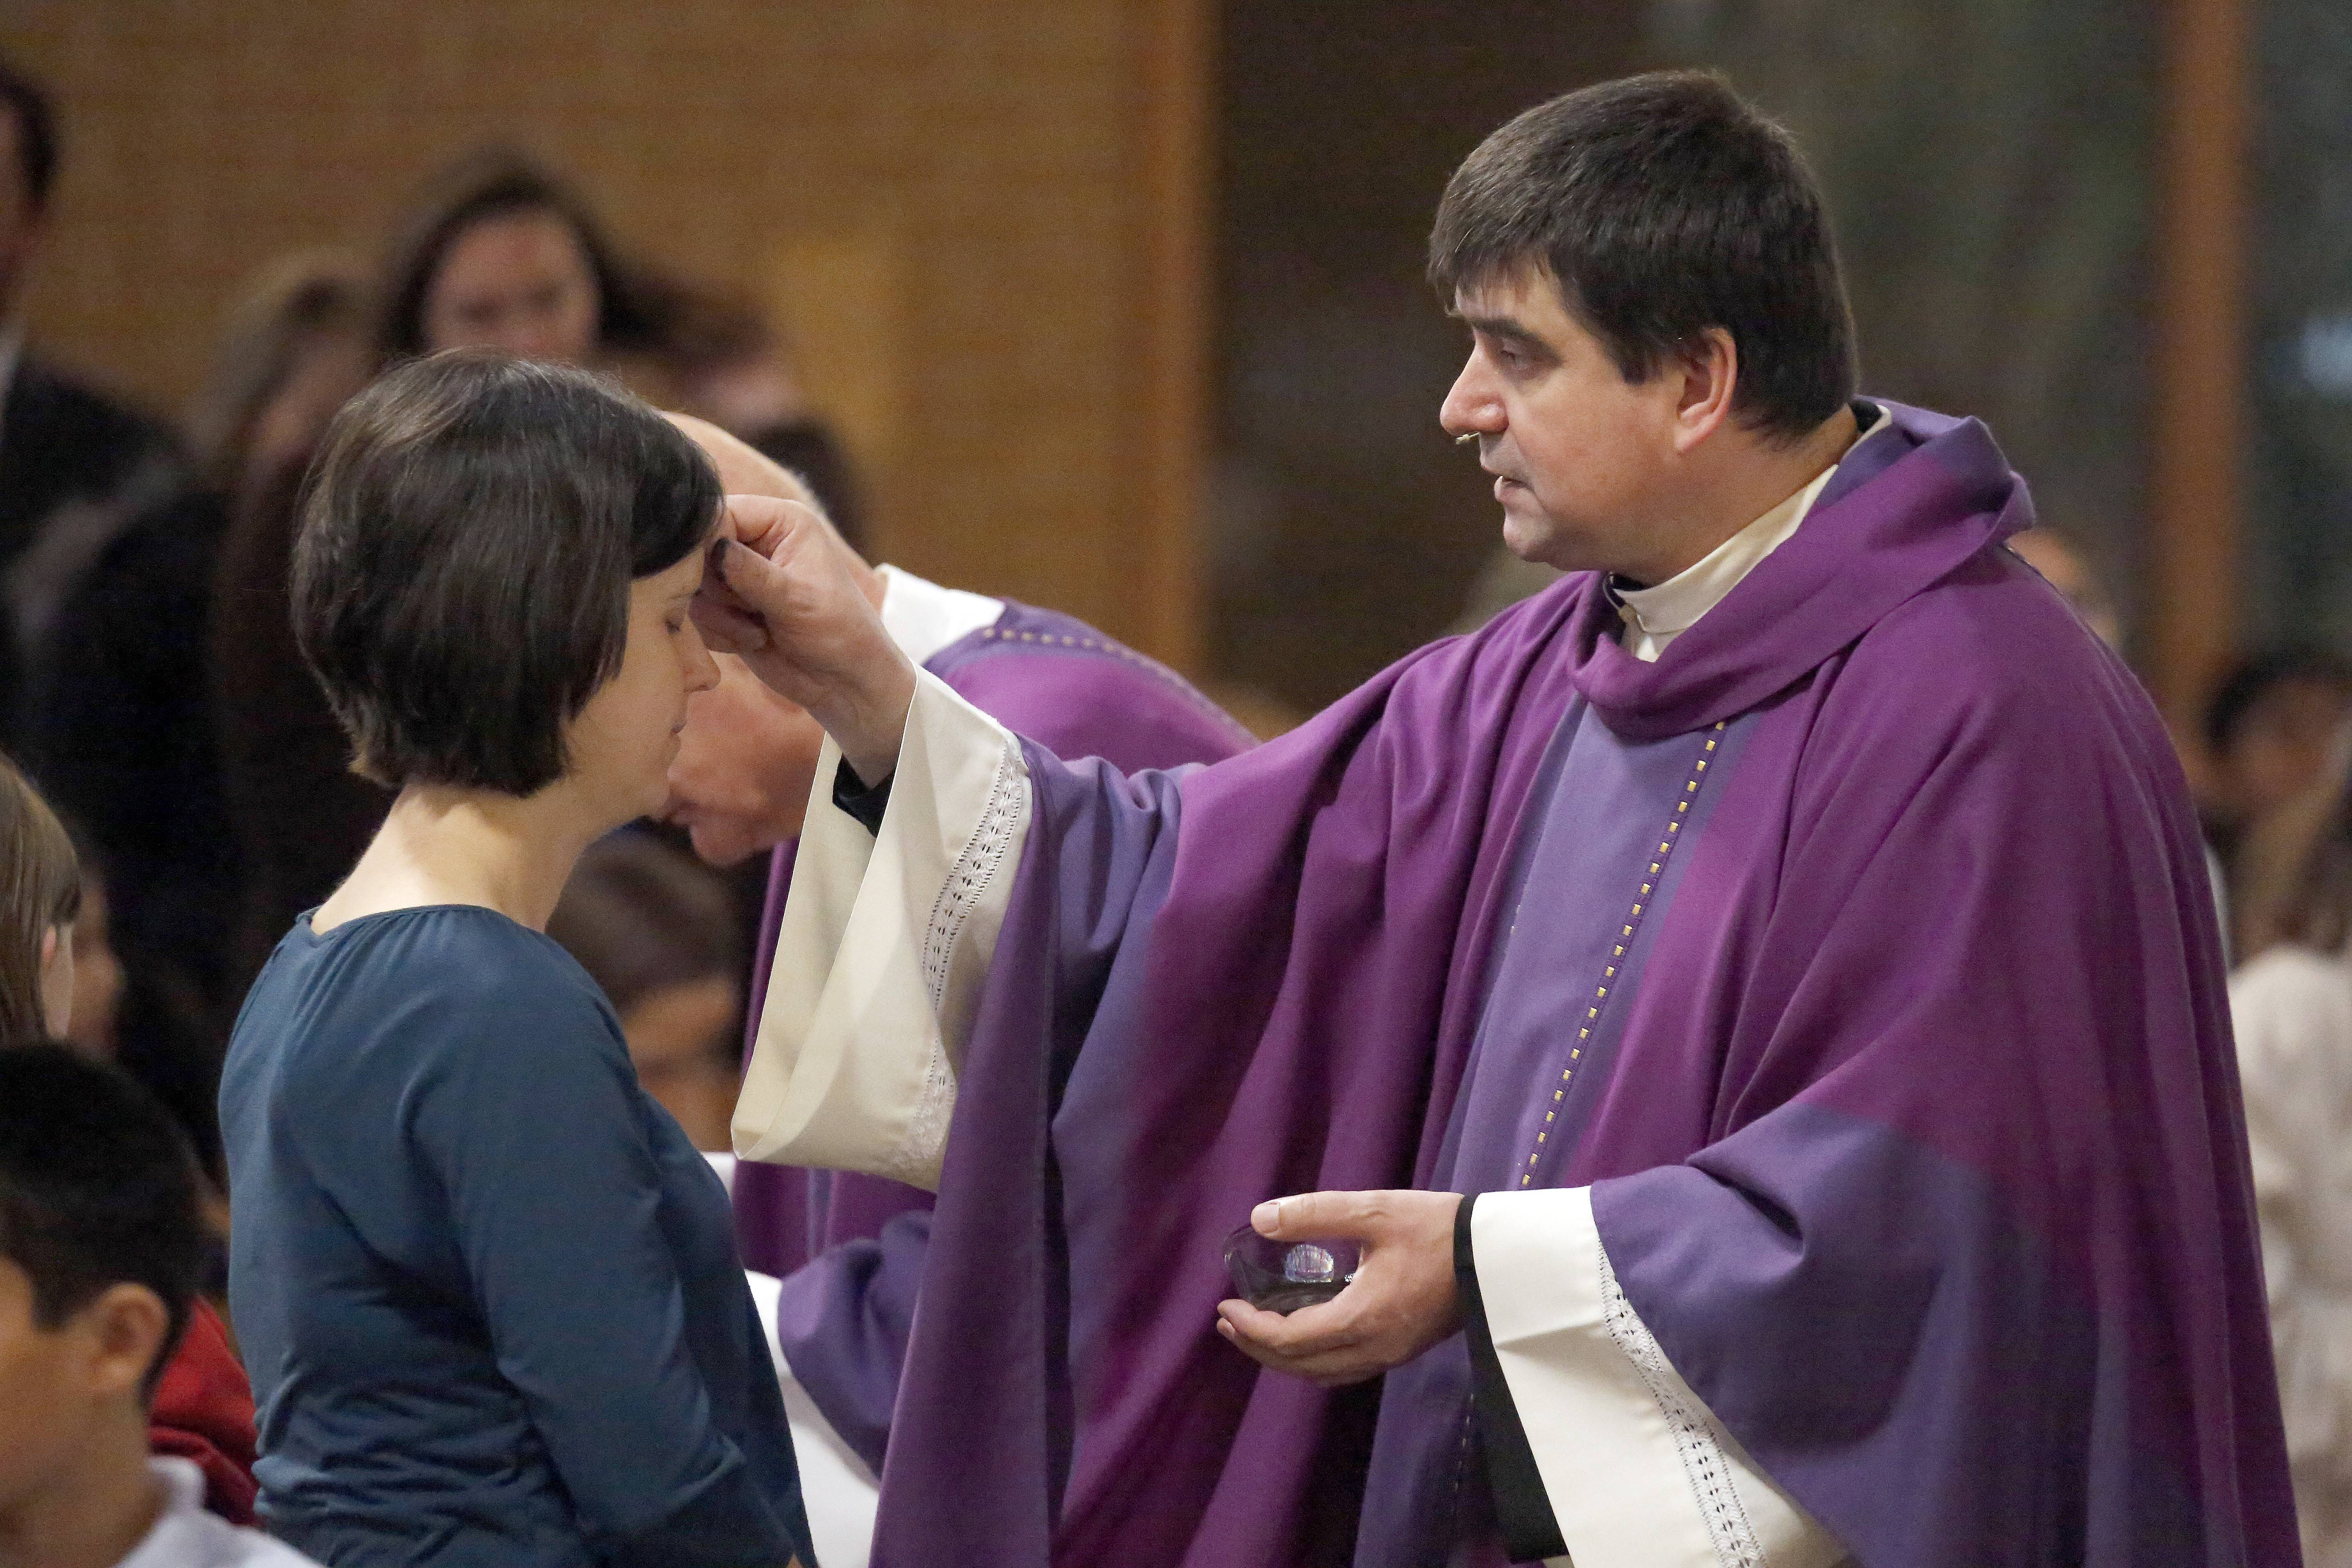 Father Peter Sarnicki, right, puts ashes on St. Margaret Mary Catholic School teacher Rachel Urbaszewski.